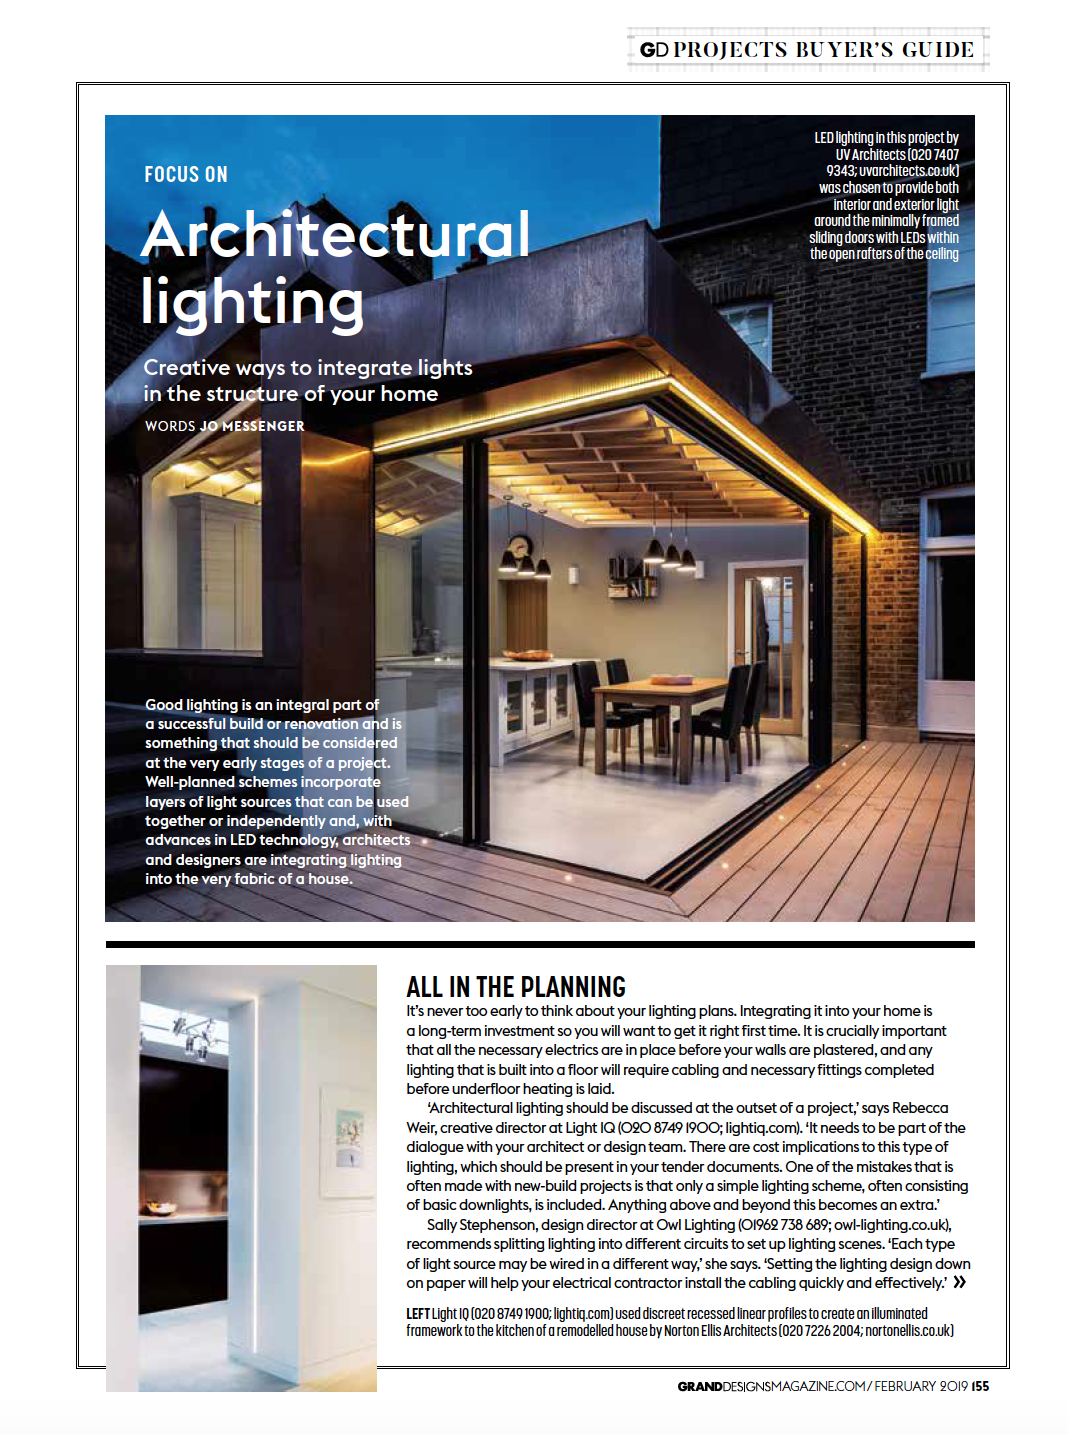 Eleanor Bell Grand Designs Feb 2019 Architectural Lighting 1